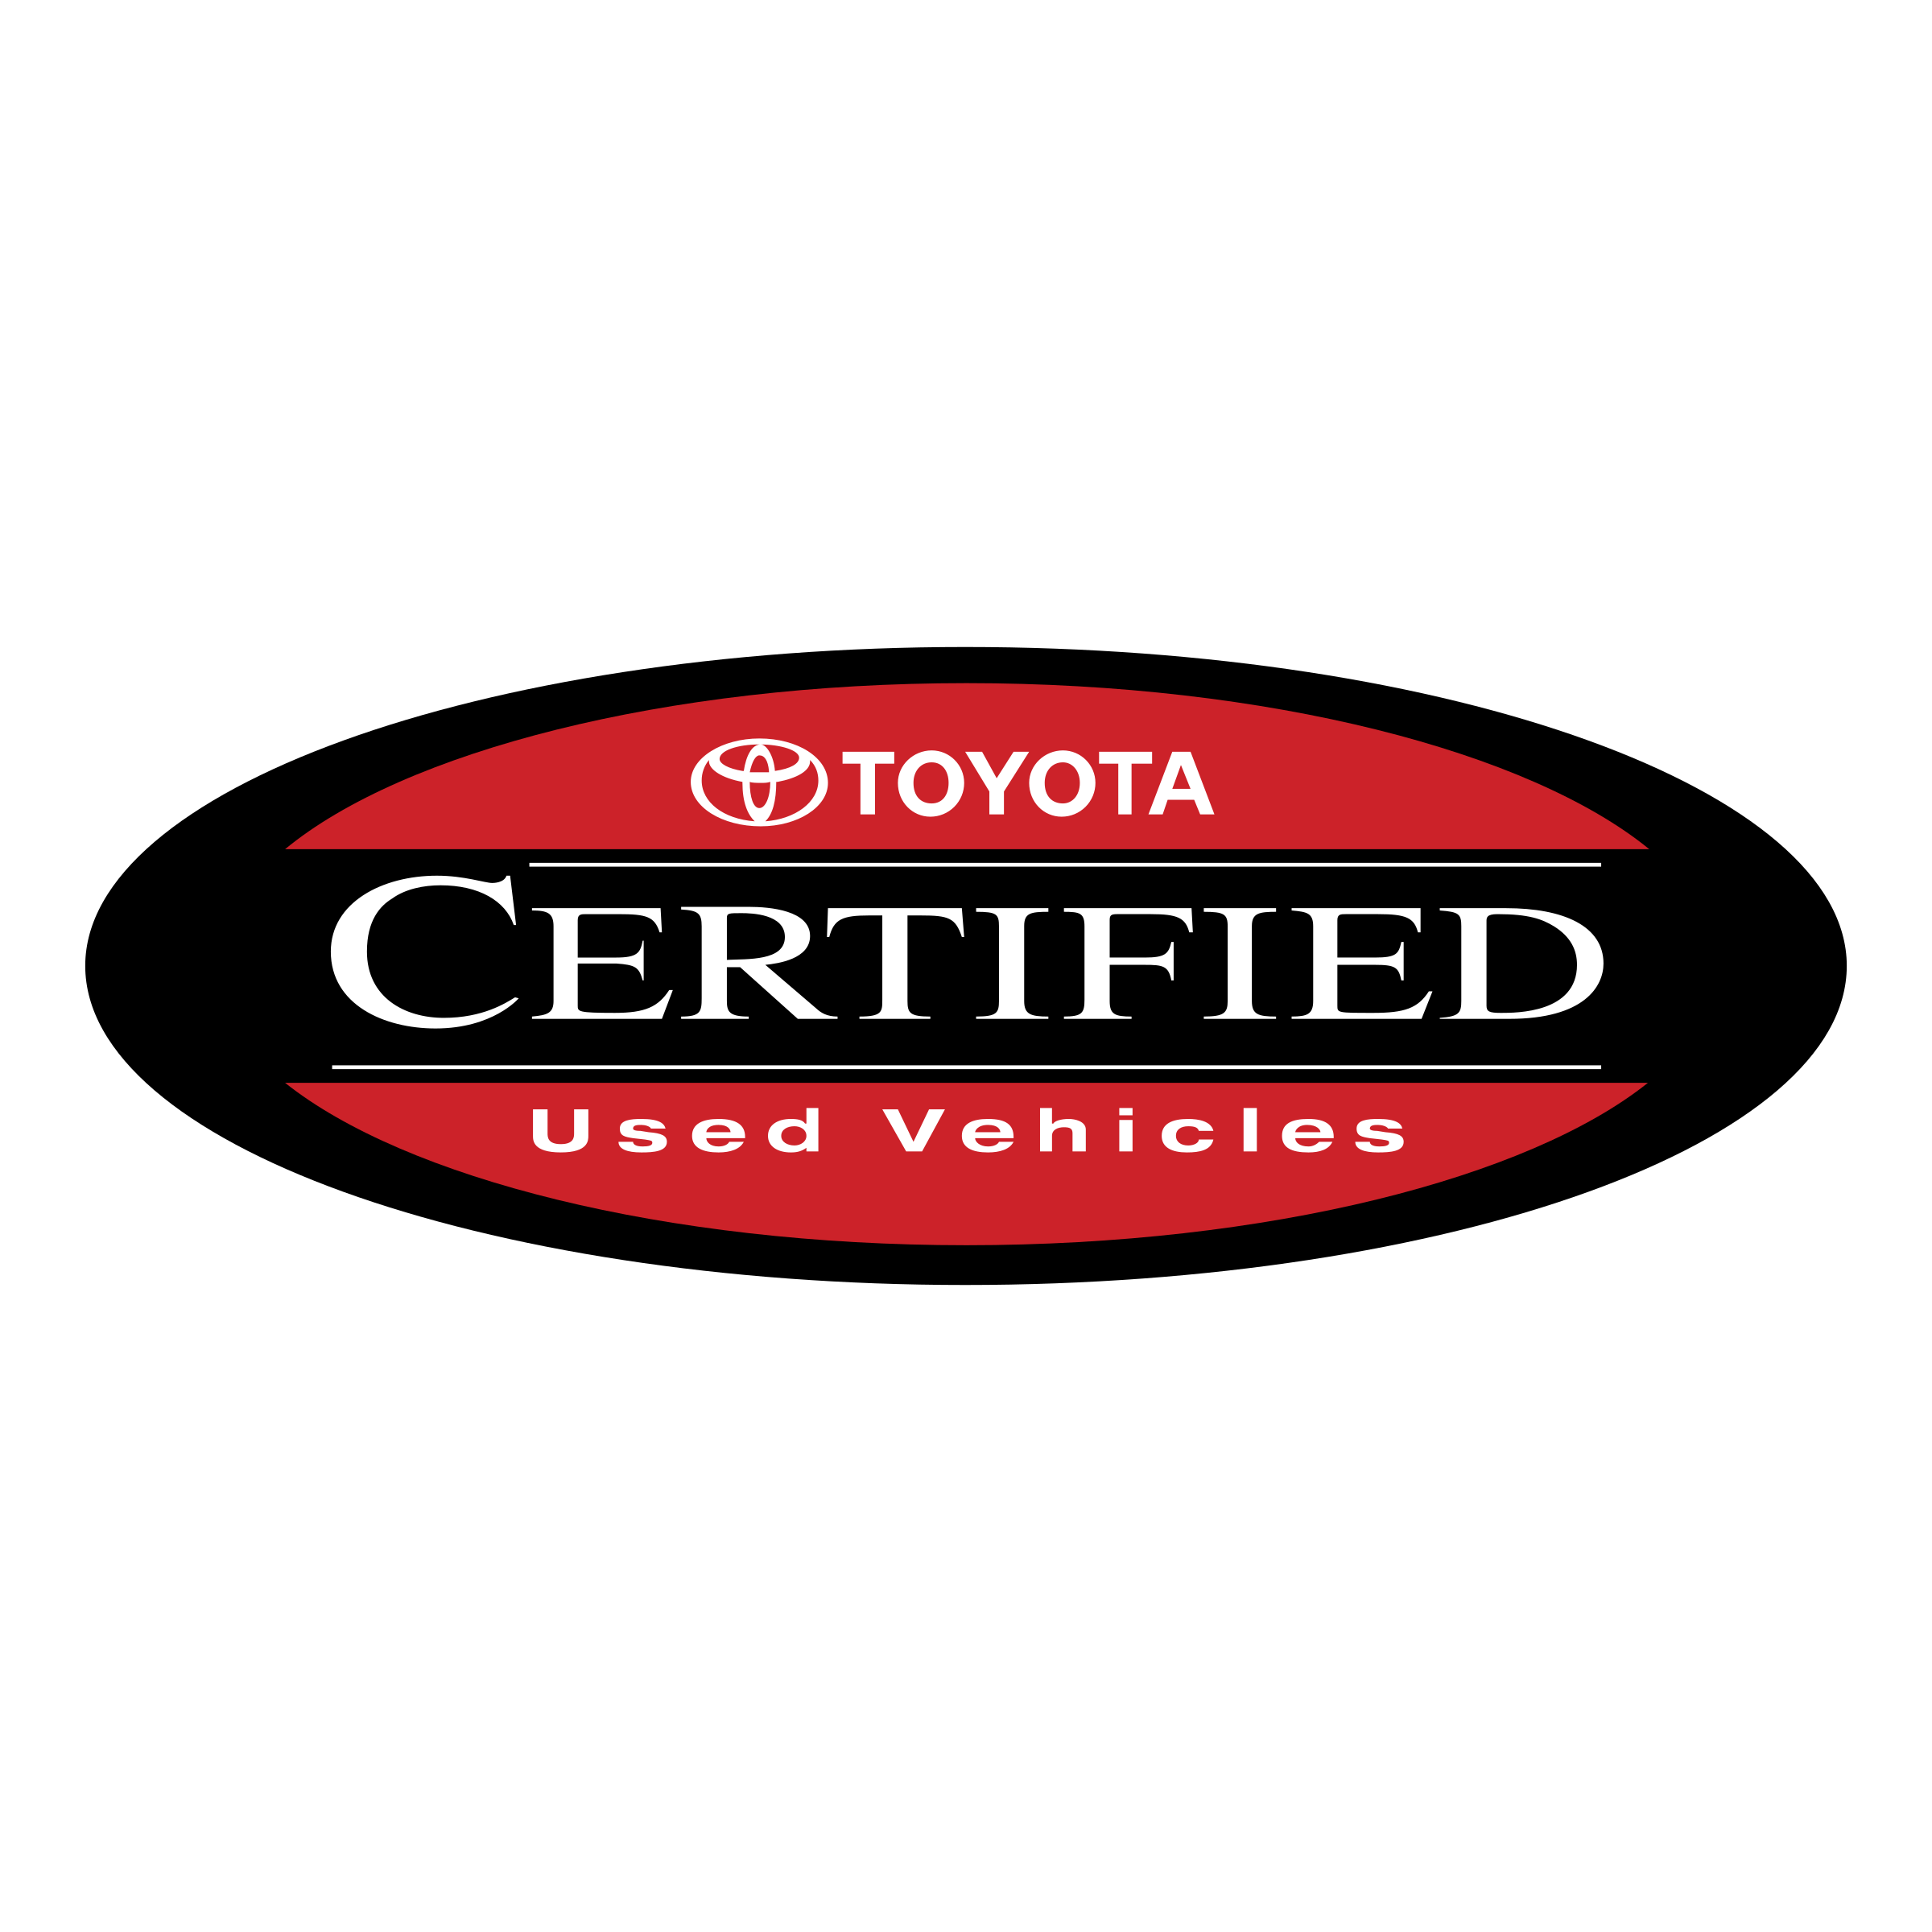 Certified Used Toyota >> Toyota Certified Used Vehicles Logo Png Transparent Svg Vector